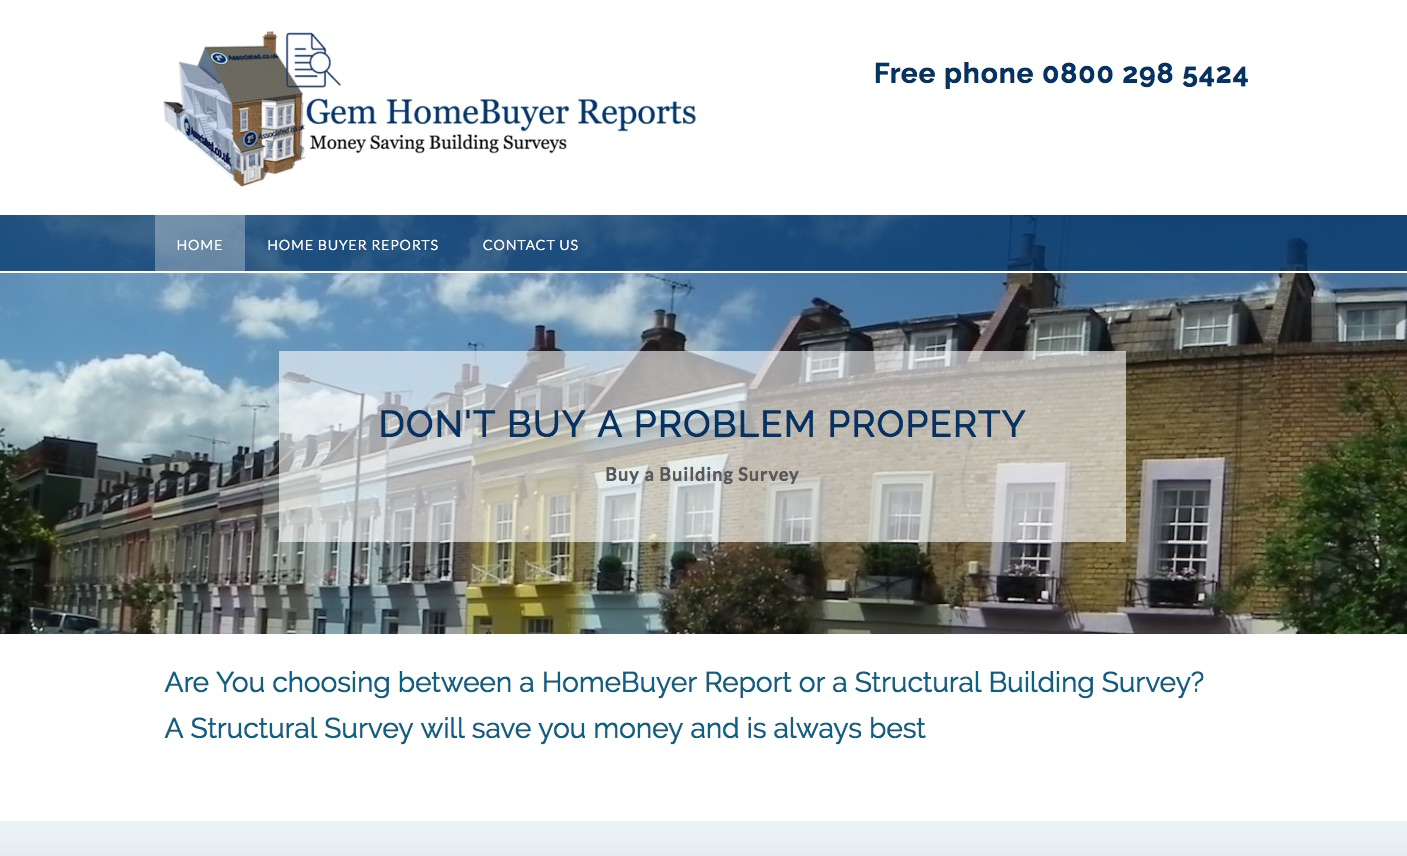 Website Brief - Take a Look at GemHomeBuyerReports.co.uk